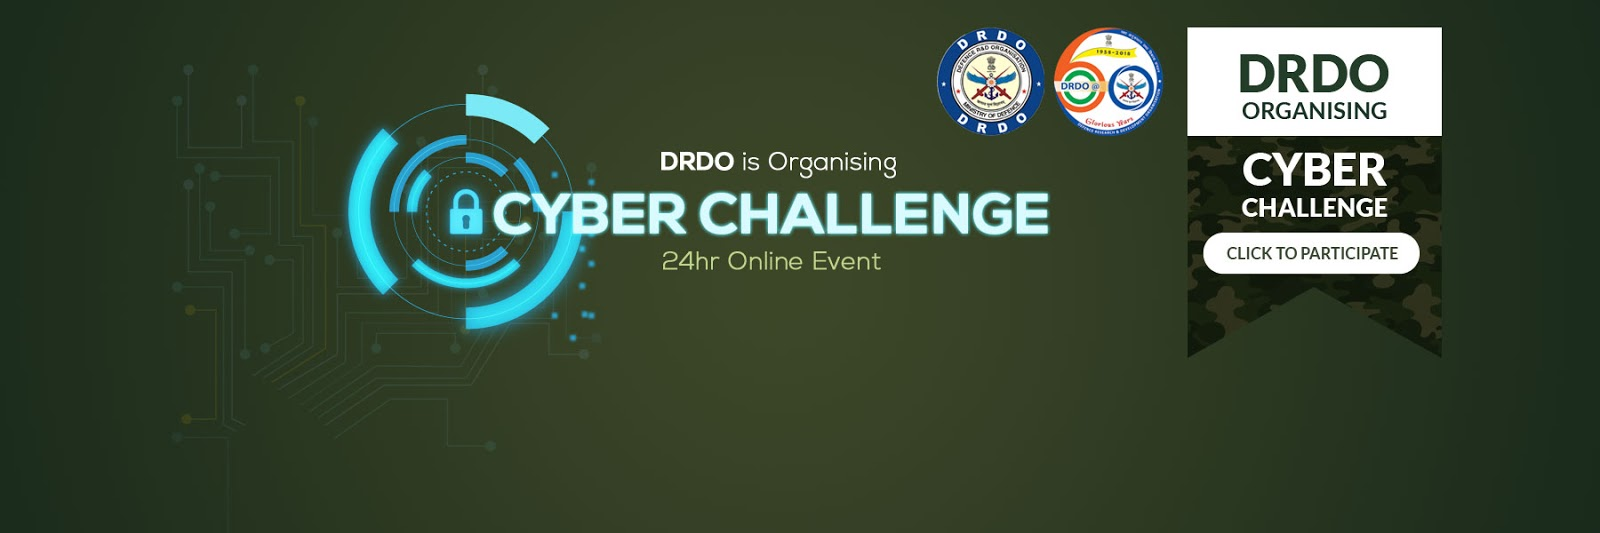 Online contest to win cash prizes